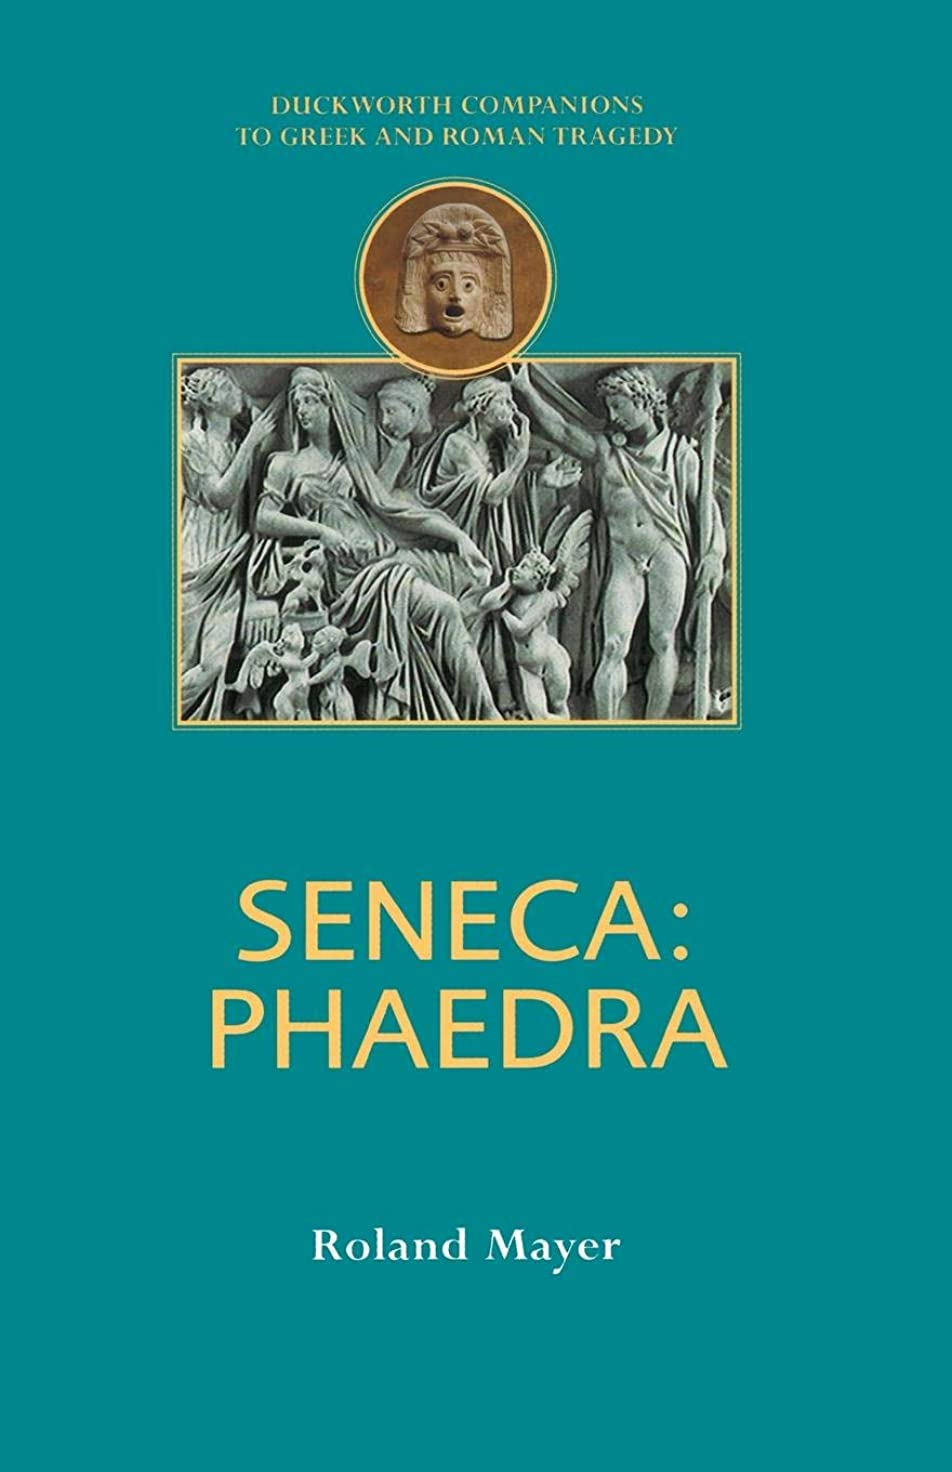 アパートメアリアンジョーンズ模索Seneca: Phaedra (Duckworth Companions to Greek and Roman Tragedy)